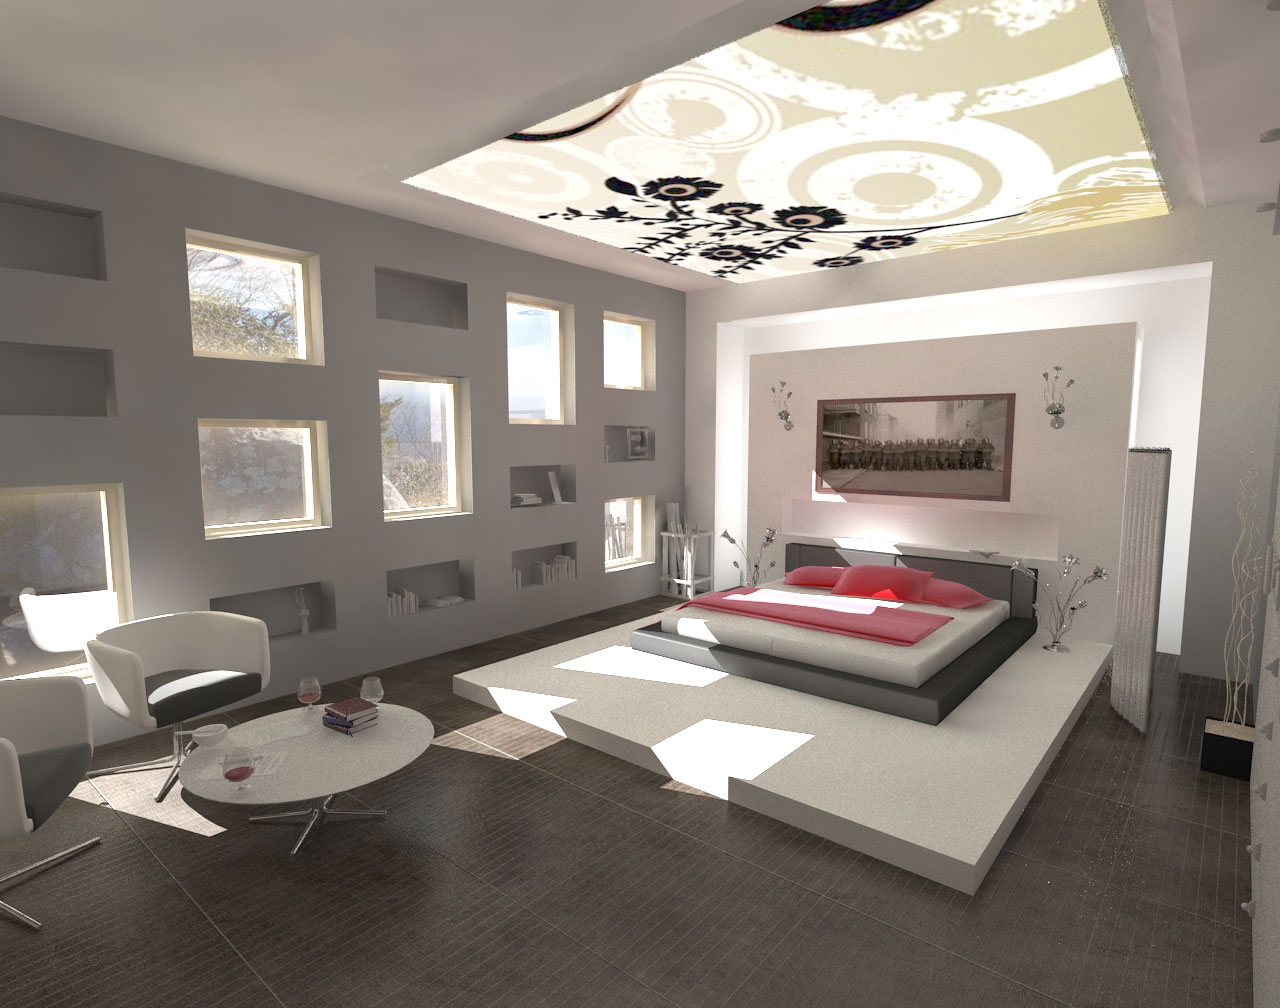 Exclusive interior bedroom ideas home design ideas and Bedroom design